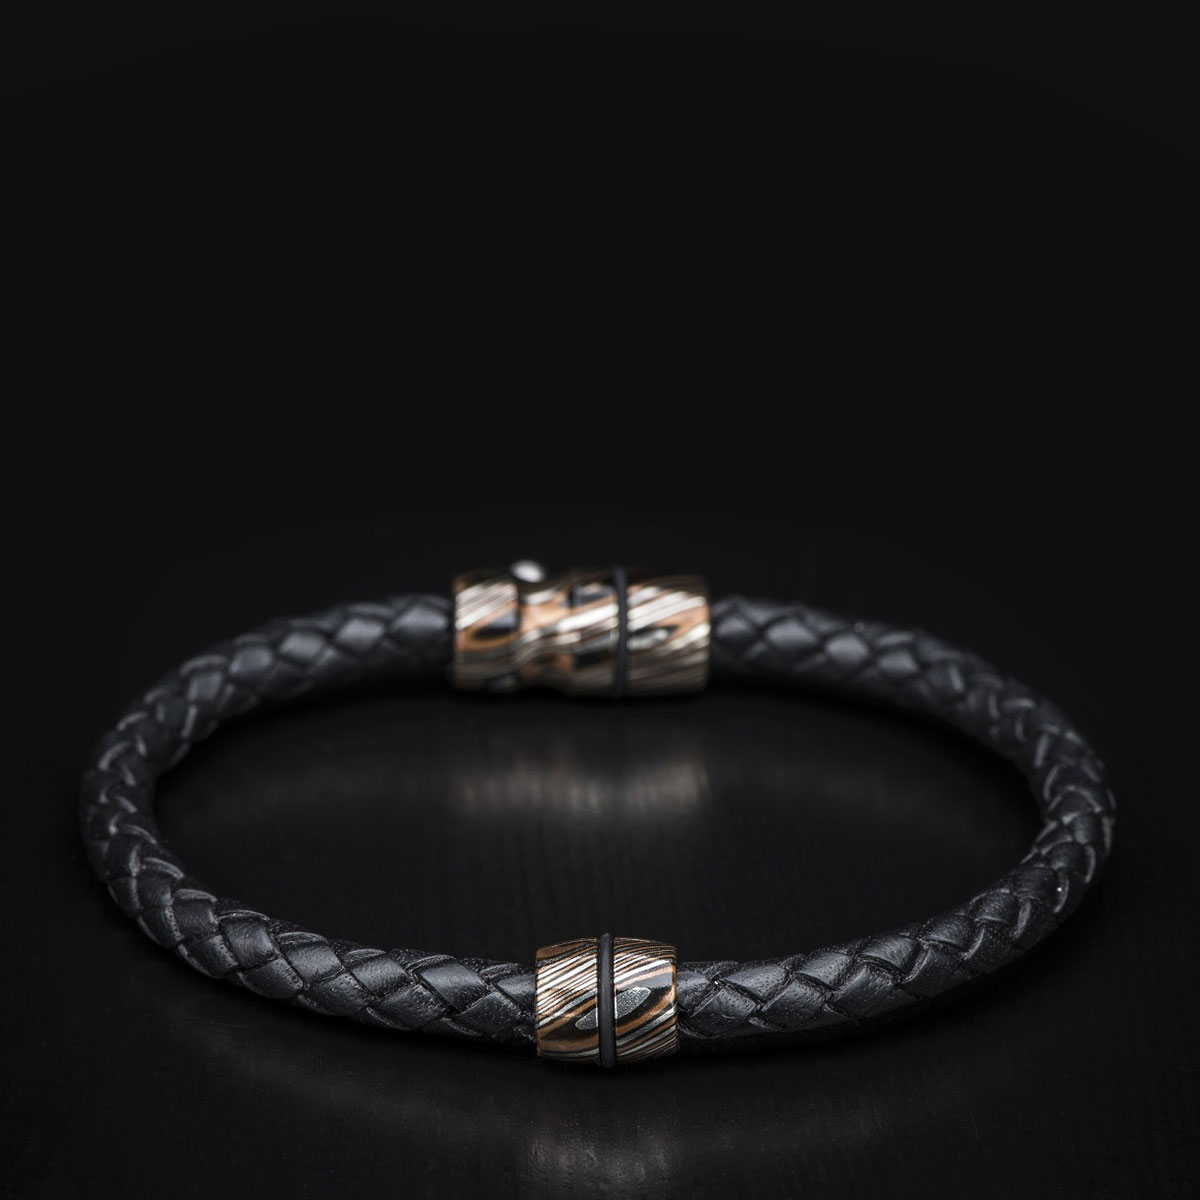 611-89-William Henry Braided Leather Bracelet